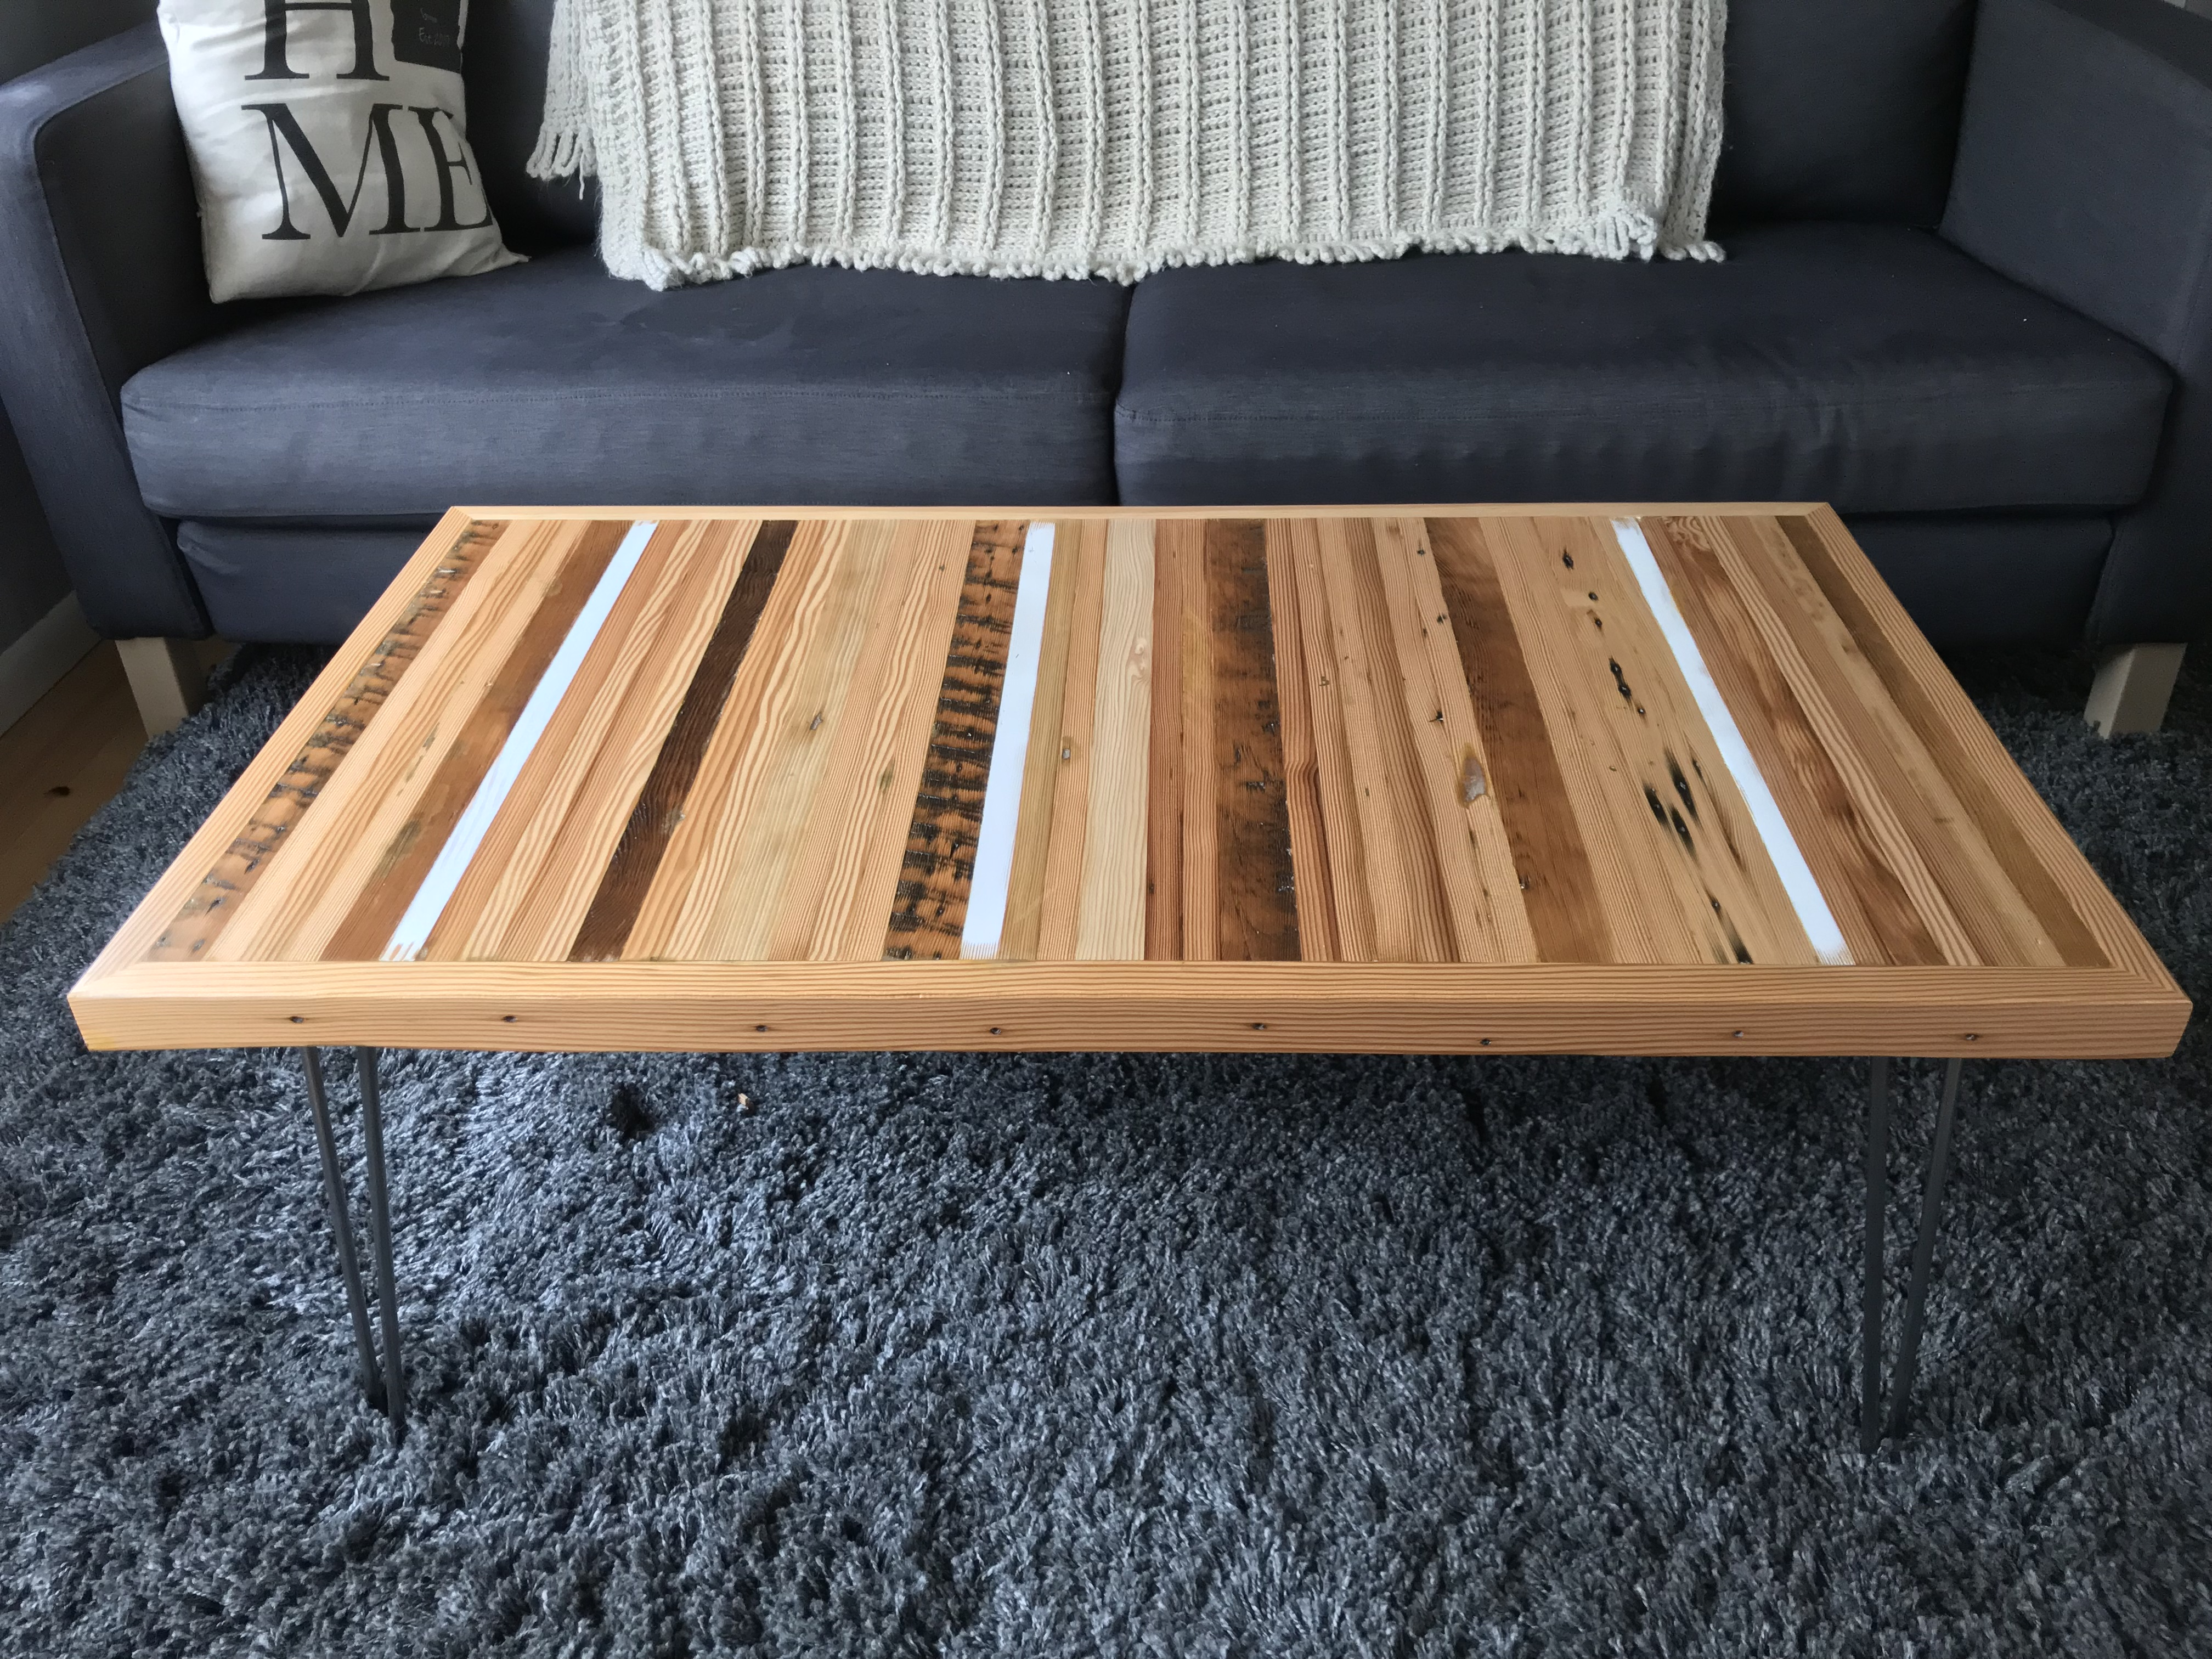 Reclaimed Slatted Coffee Table